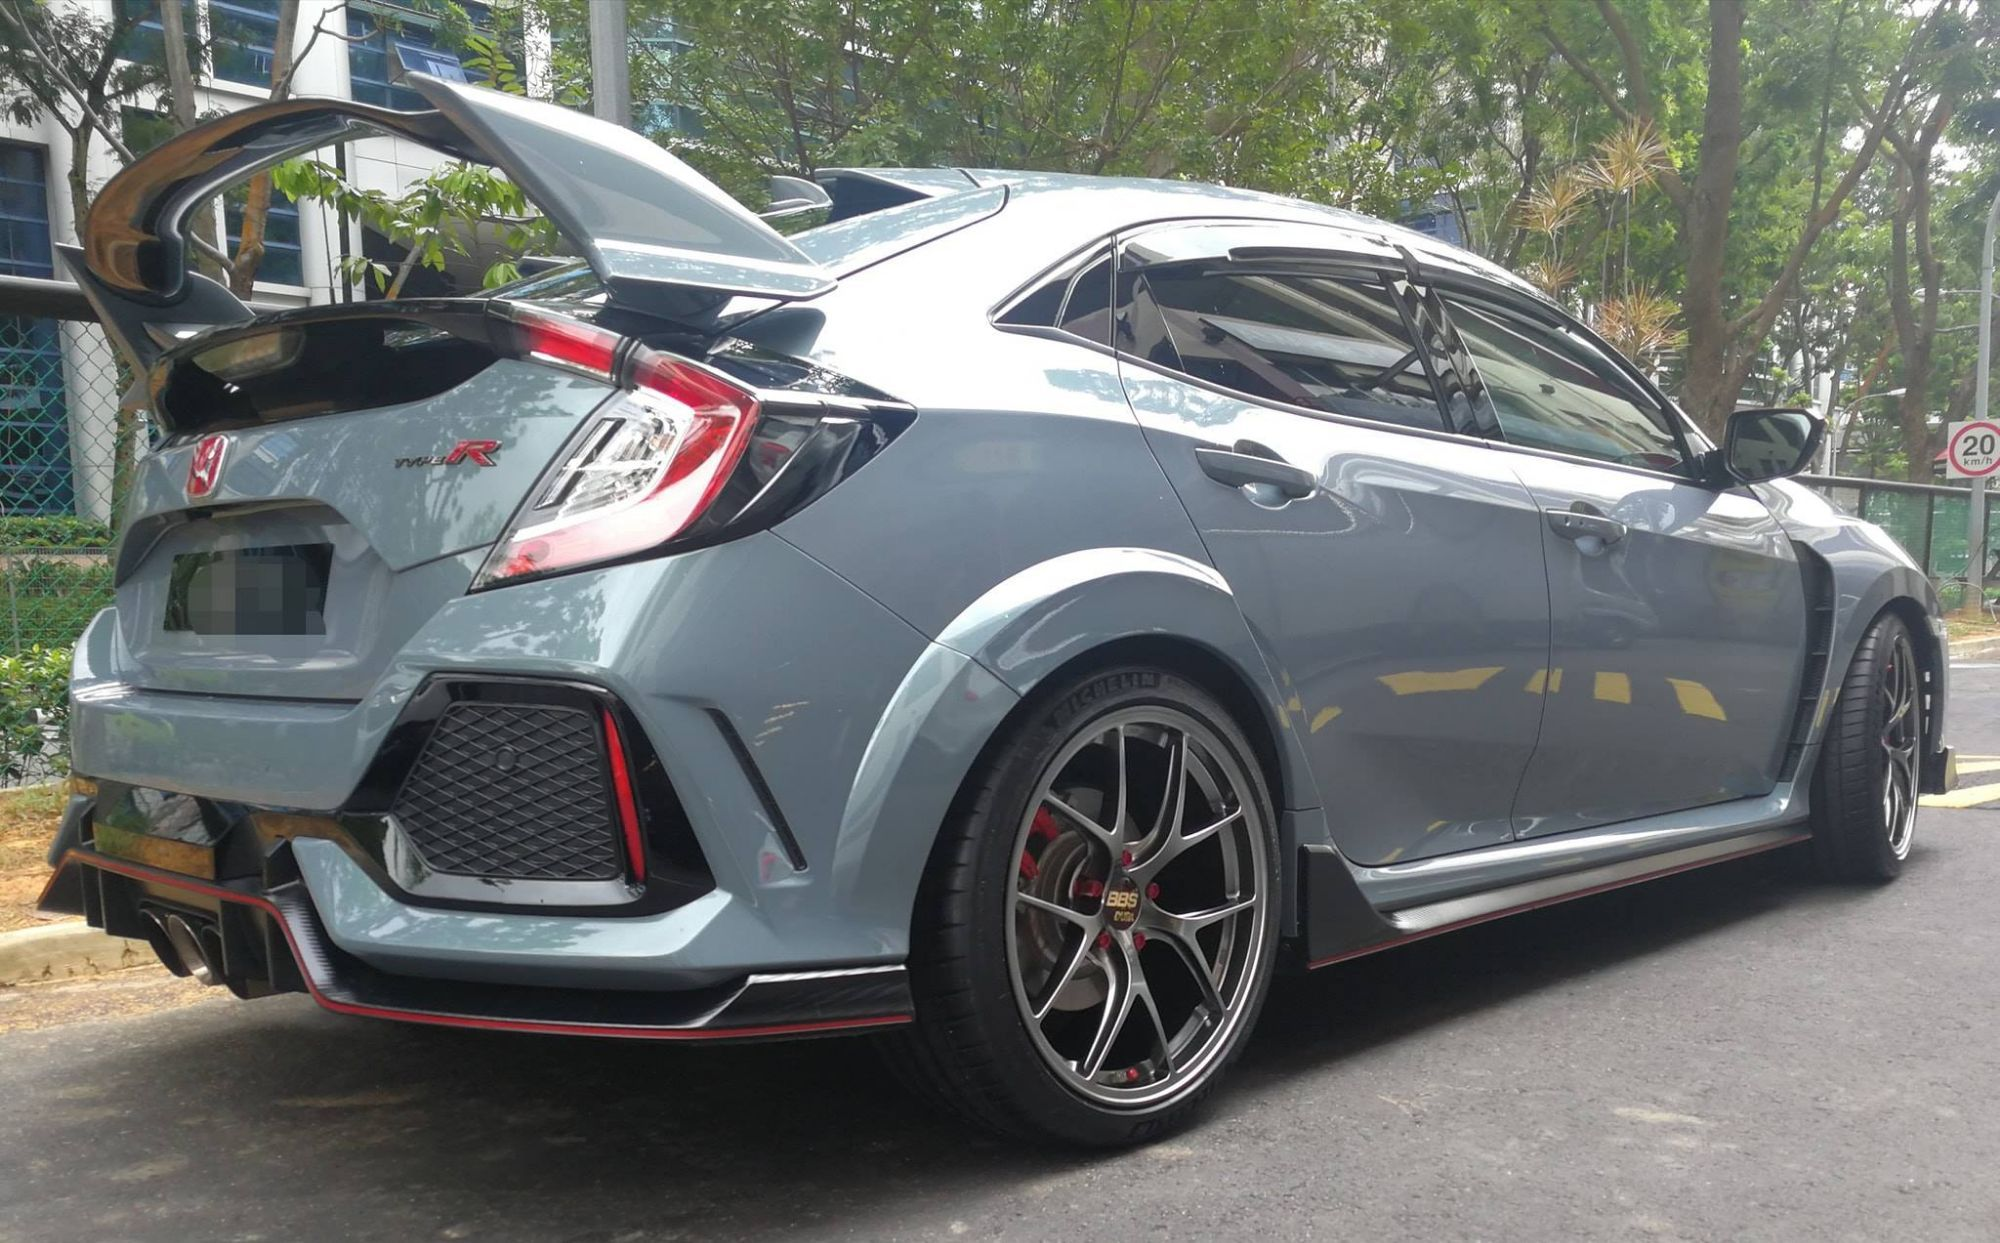 Honda Civic Type R Fk8 Grey Bbs Ri D Wheel Fronthonda Civic Type R Fk8 Grey Bbs Ri D Wheel Front Honda Civic Type R Honda Civic Honda Civic Sport